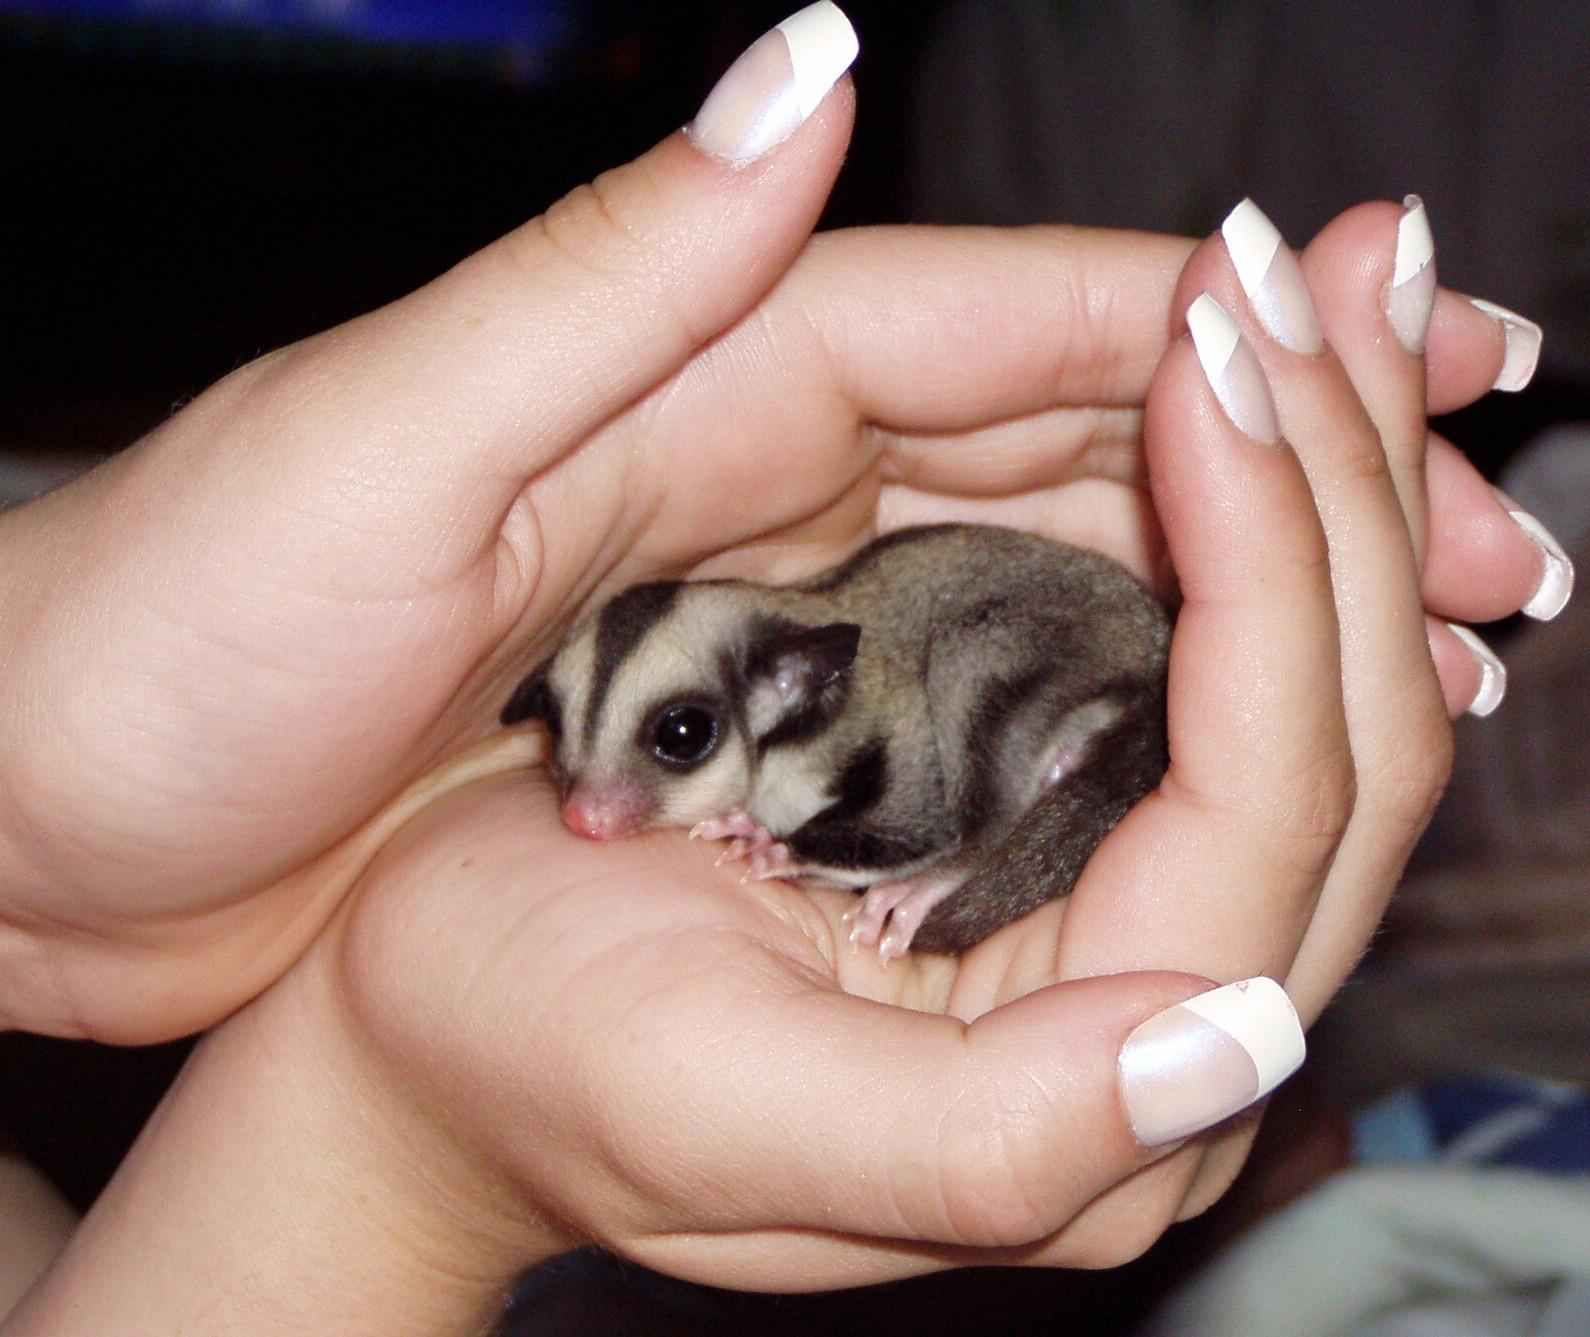 Sugar Gliders Are Marsupials Native To Indonesia And Australia And Derive Their Name From The Ability To Glide Almo Sugar Glider Baby Animals Sugar Glider Baby